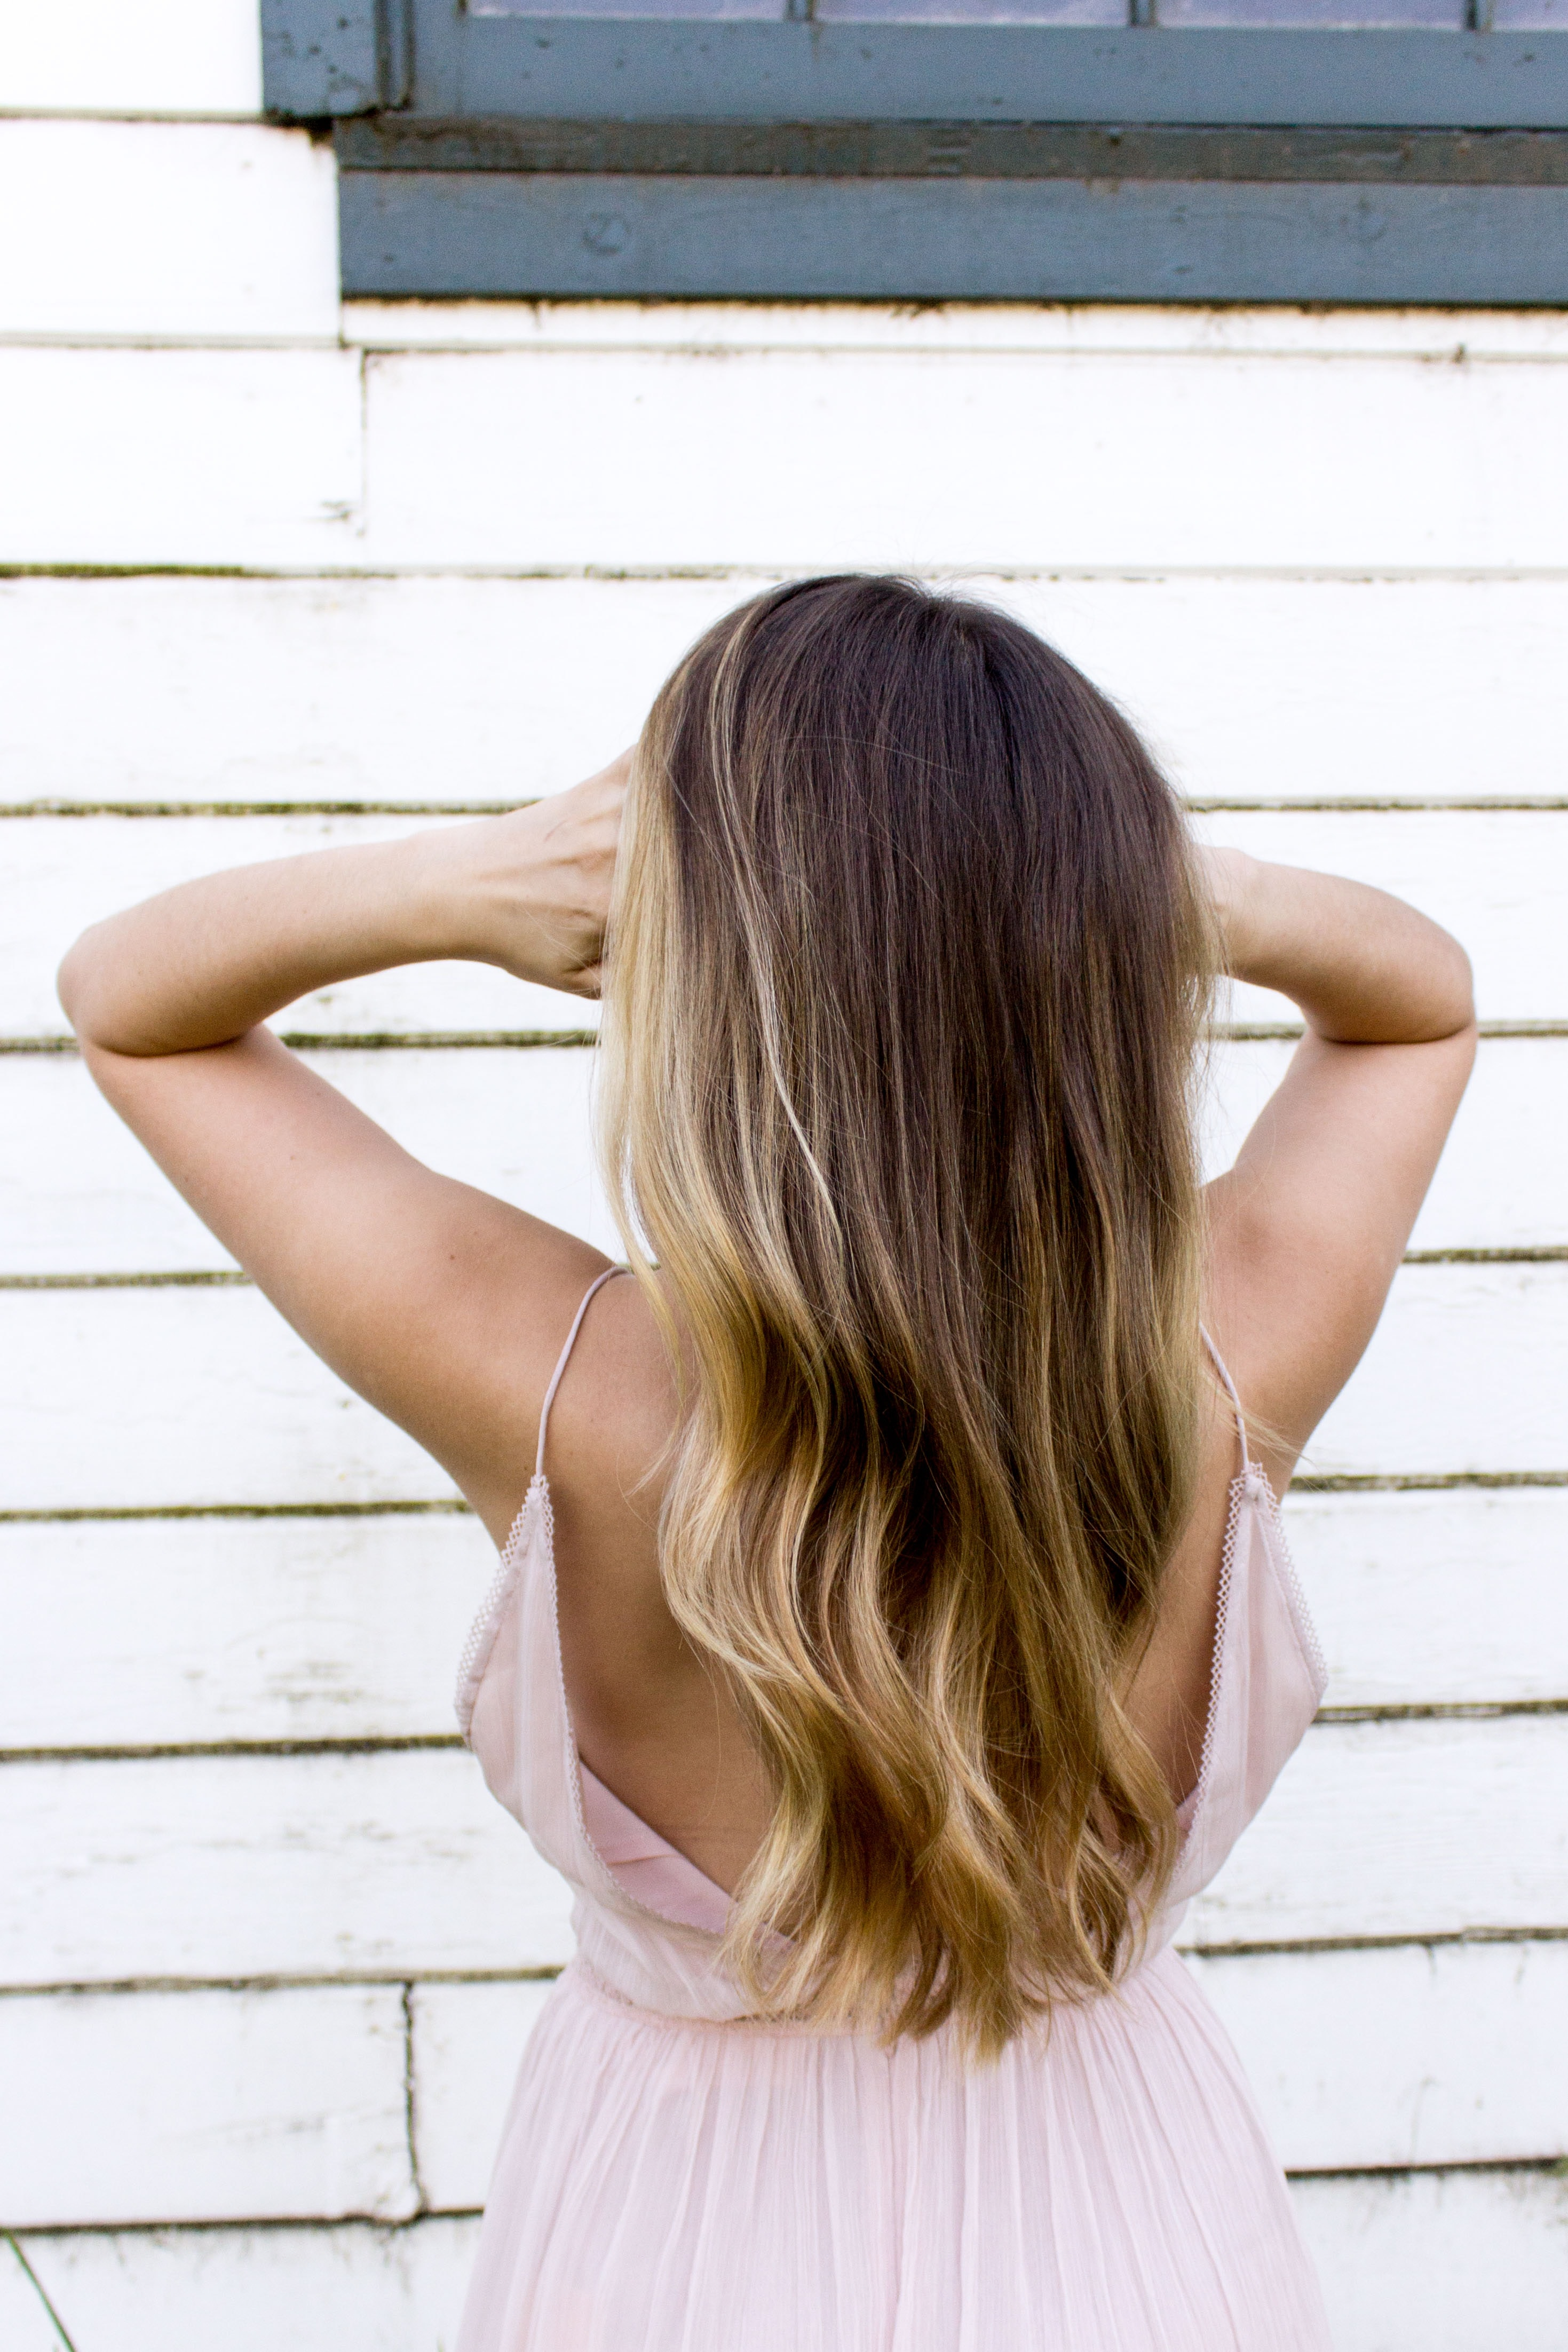 Woman faced away shaking out her hair near a wall